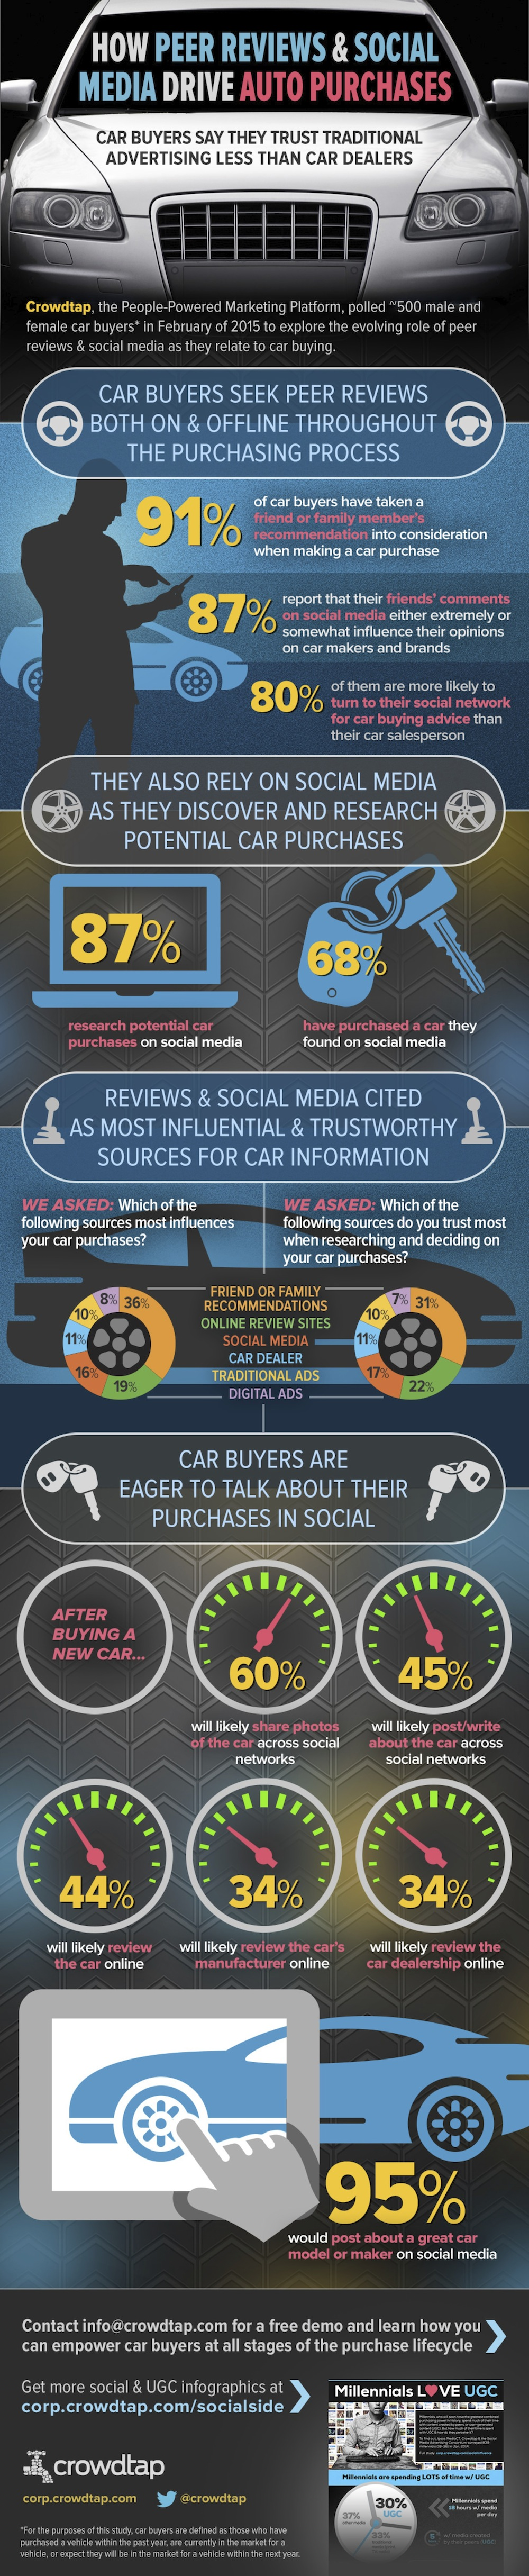 Crowdtap-Auto-Infographic-_-How-Peer-Reviews-Social-Media-Drive-Auto-Purchases